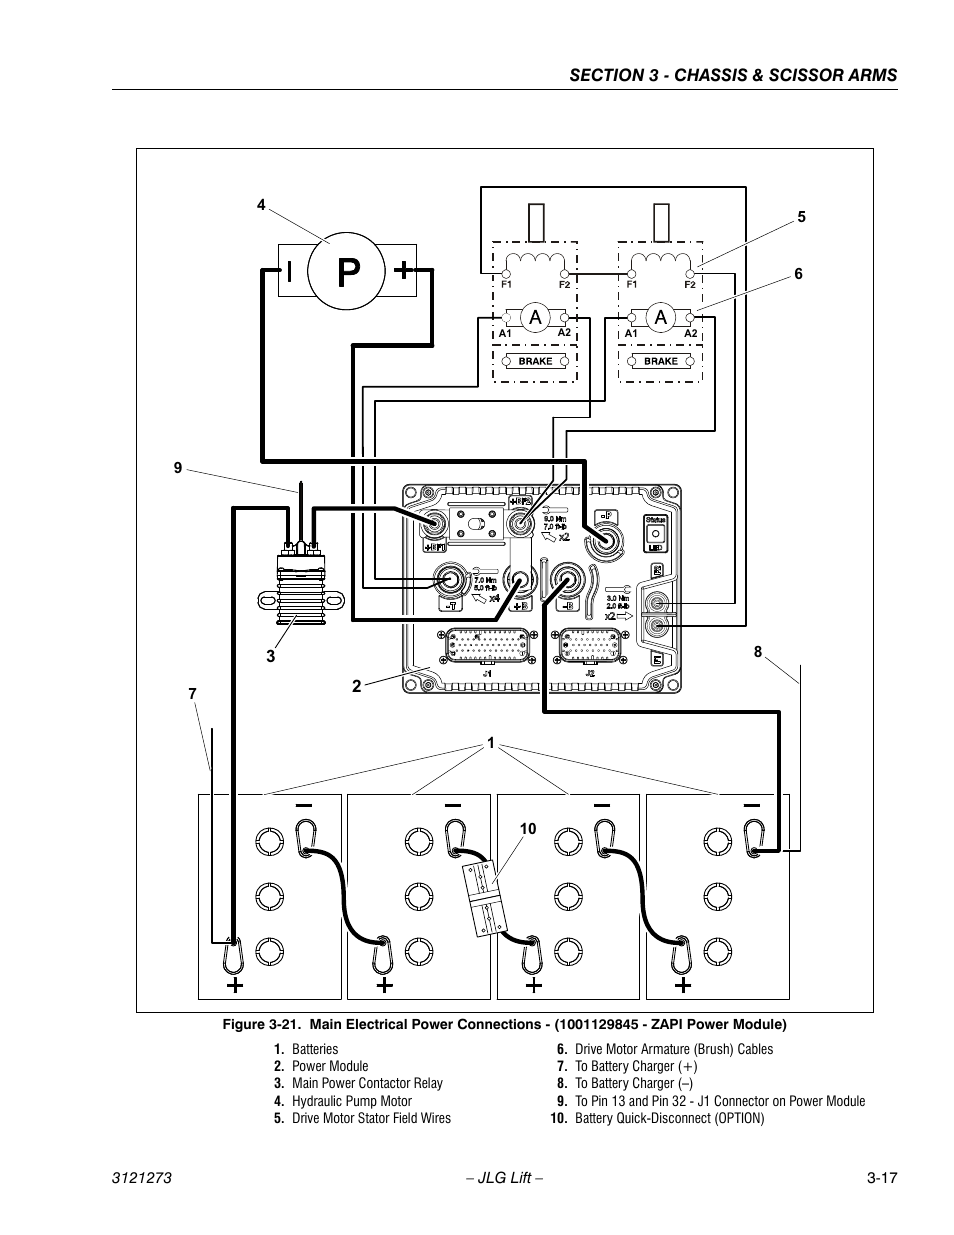 jlg 3248rs/10rs service manual user manual | page 49 / 150